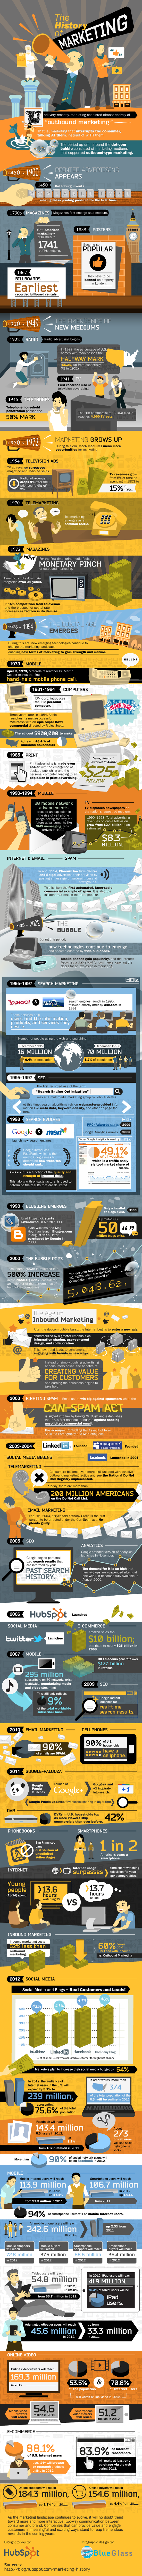 History of Marketing Infographic